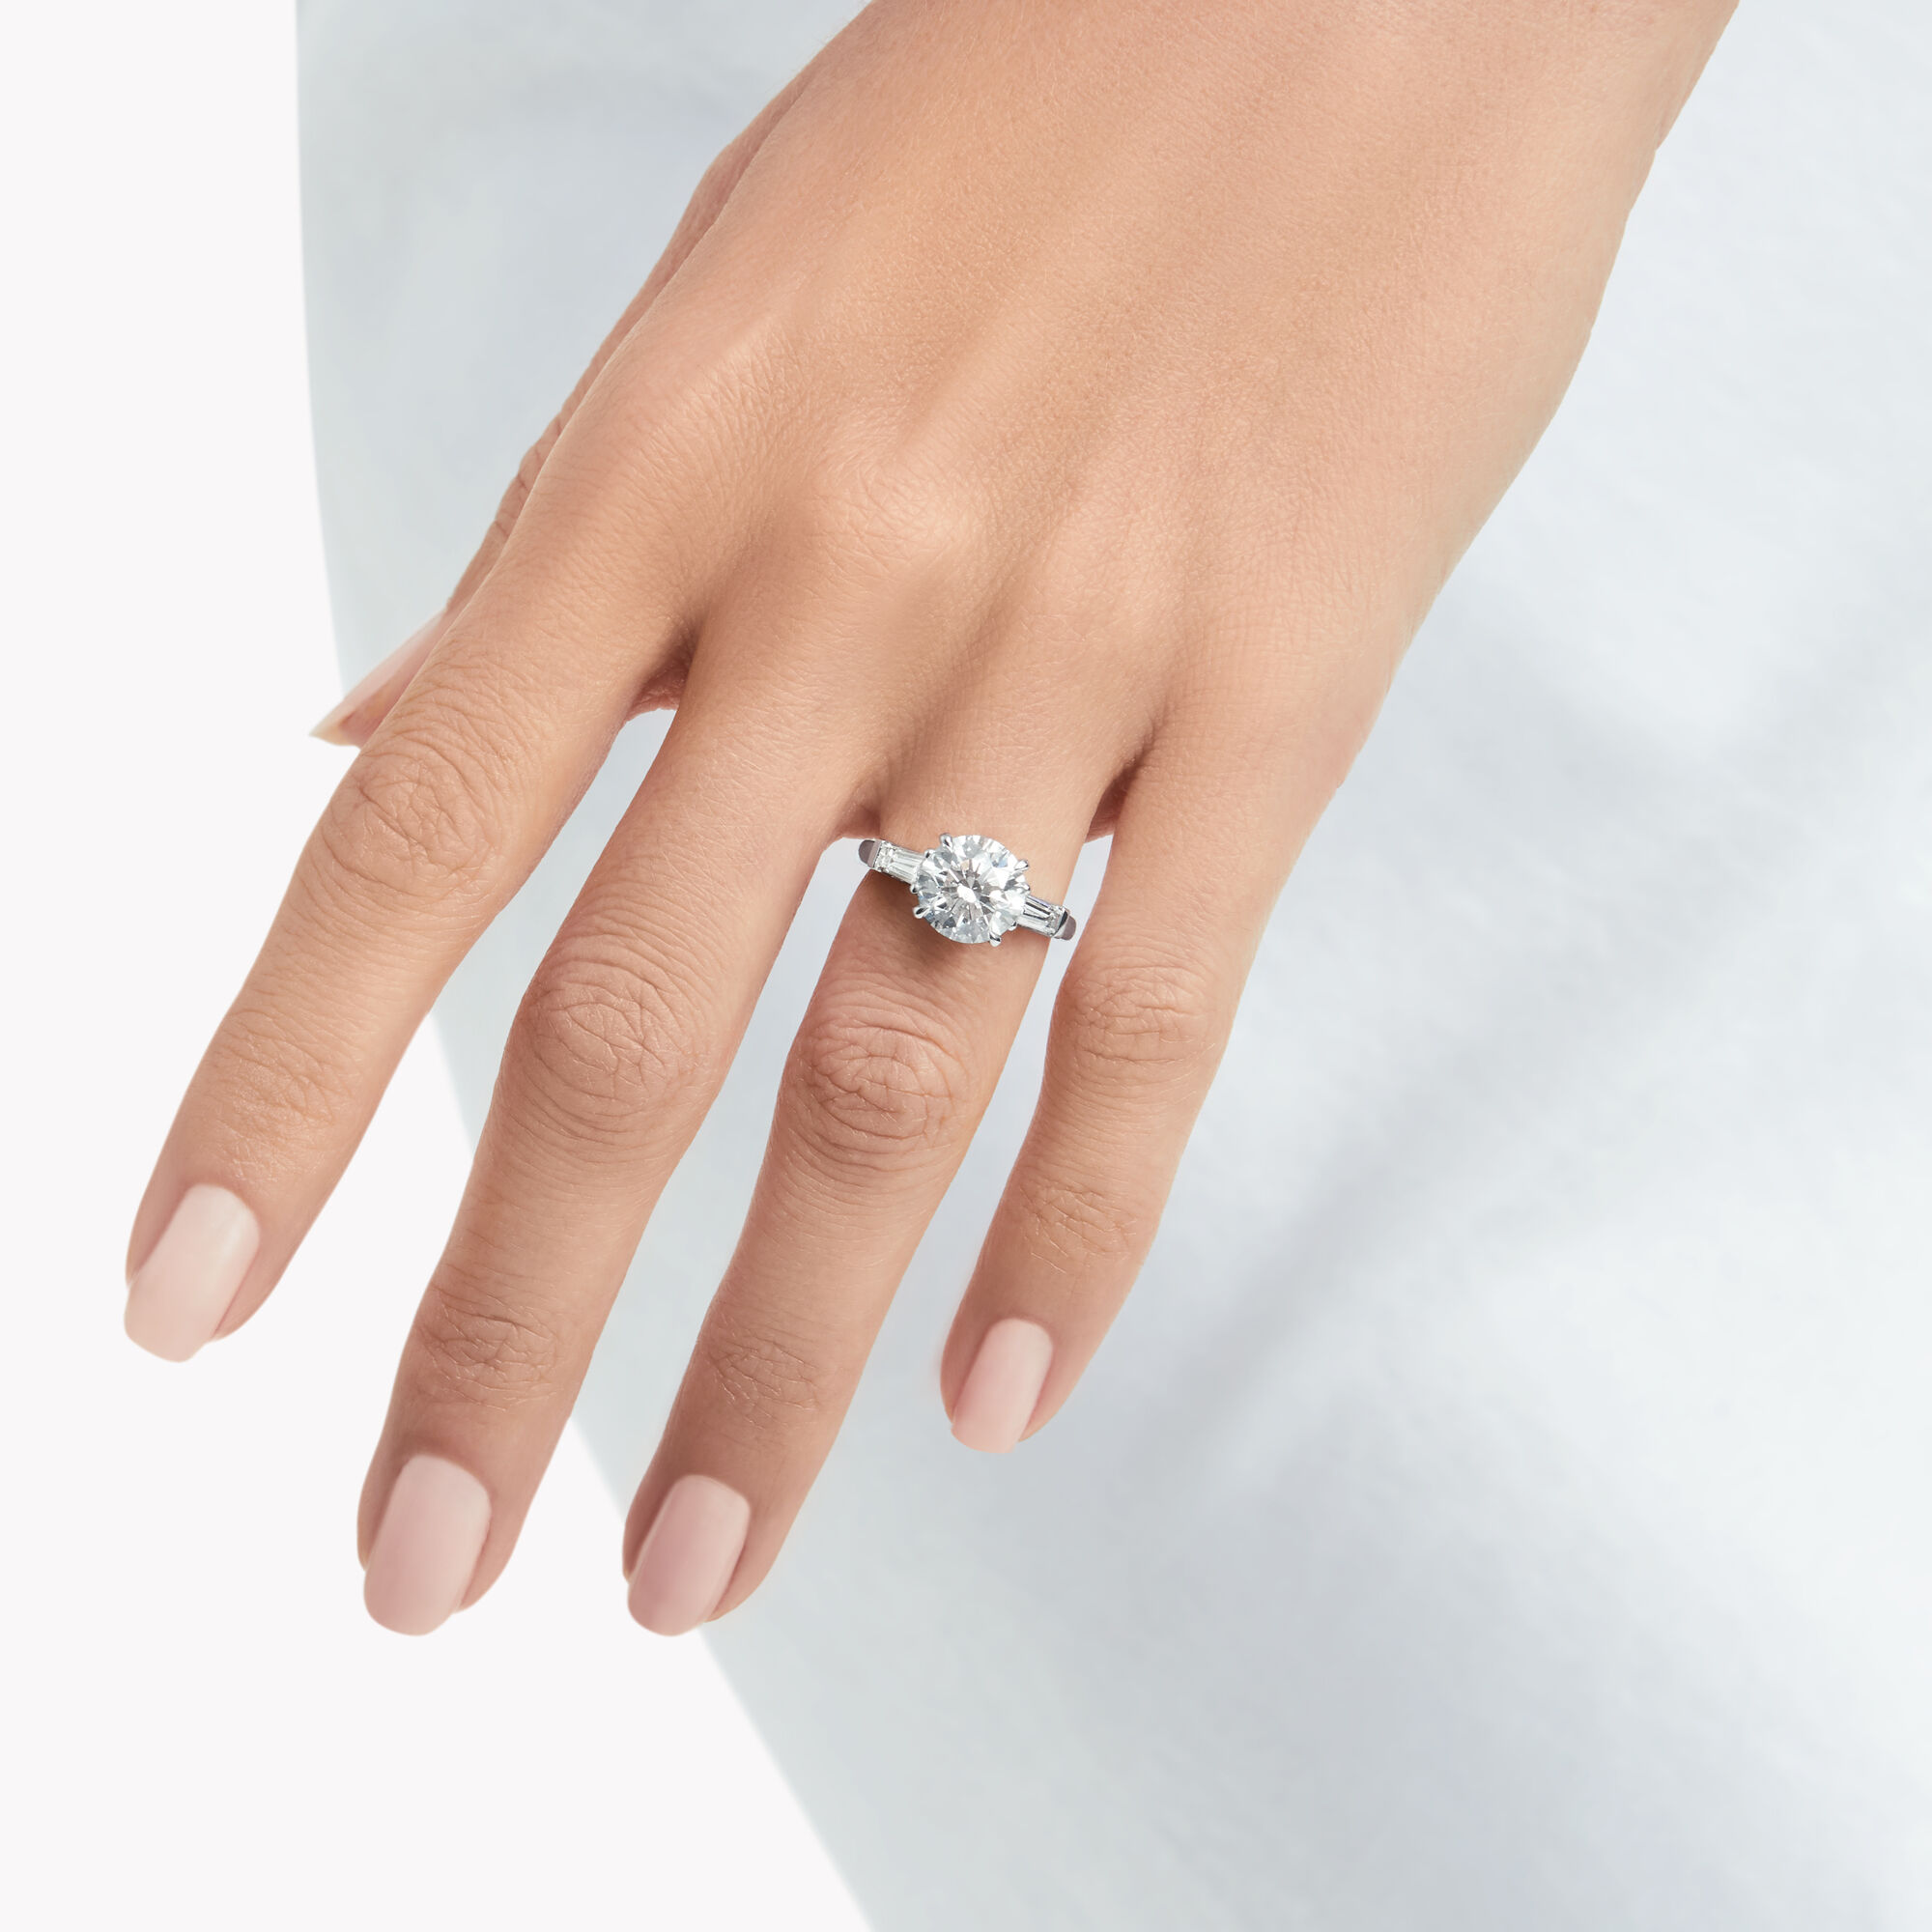 Model wears Promise Round Diamond Engagement Ring with baguette side stones from the Graff Bridal collection